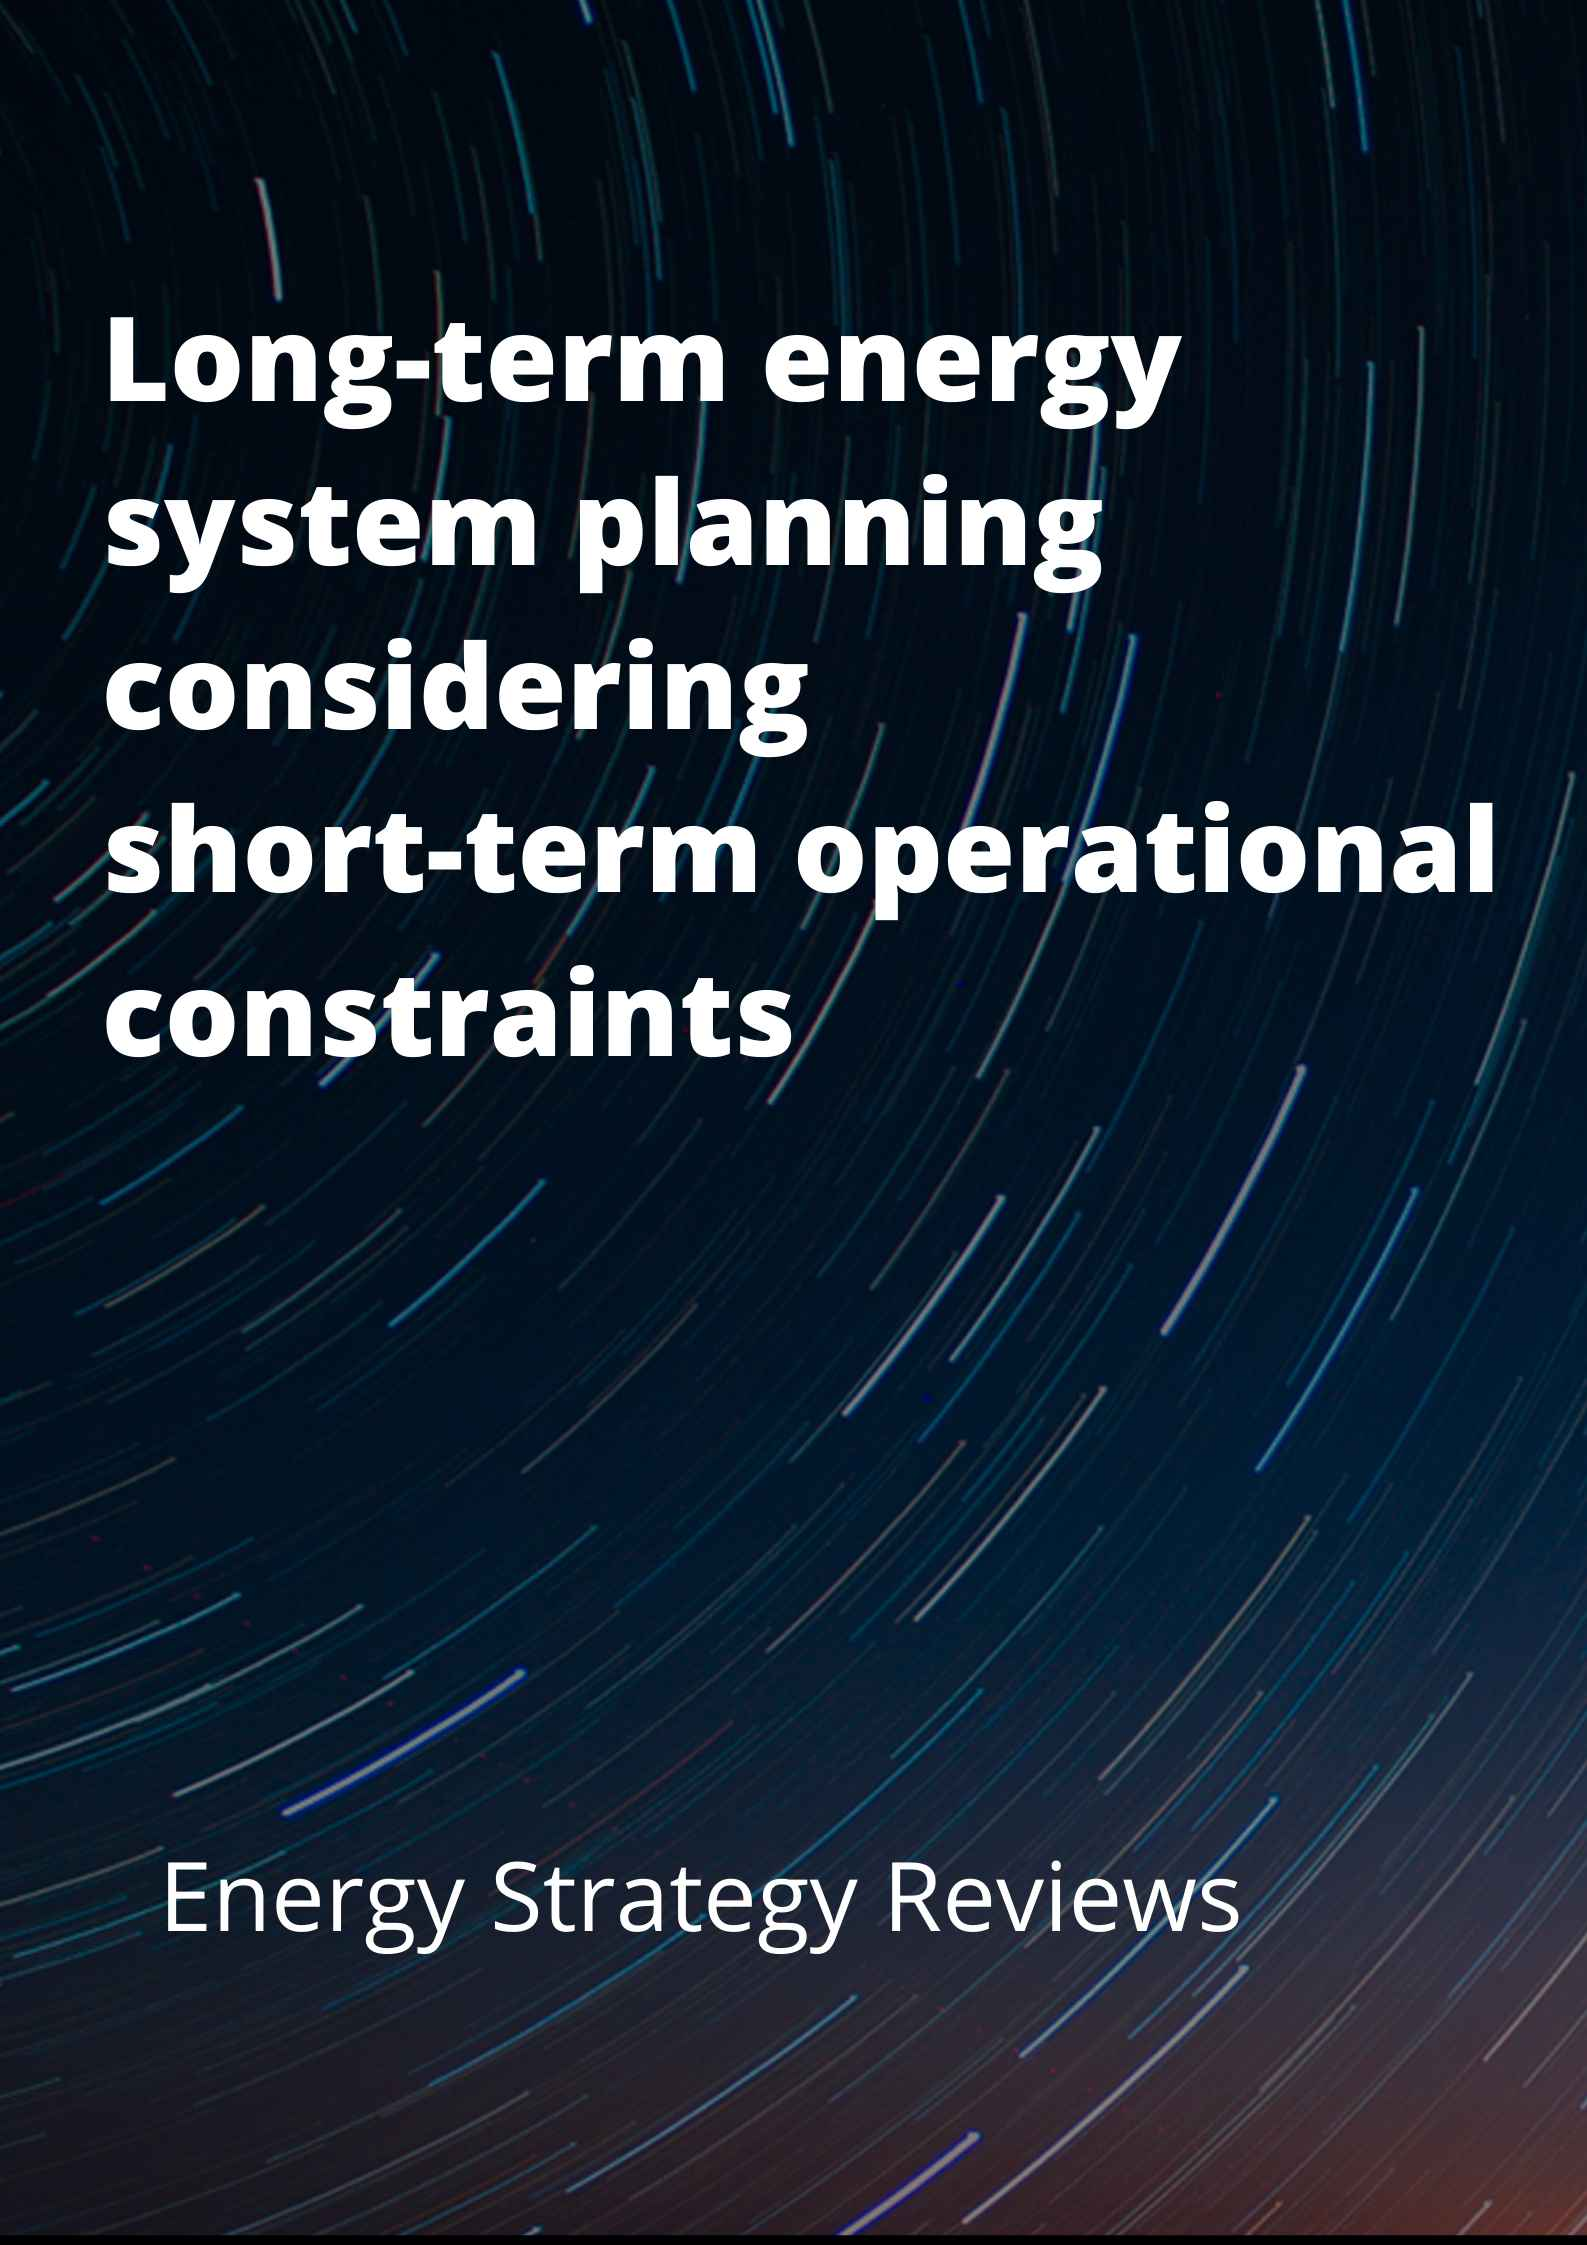 Long-term energy system planning considering short-term operational constraints